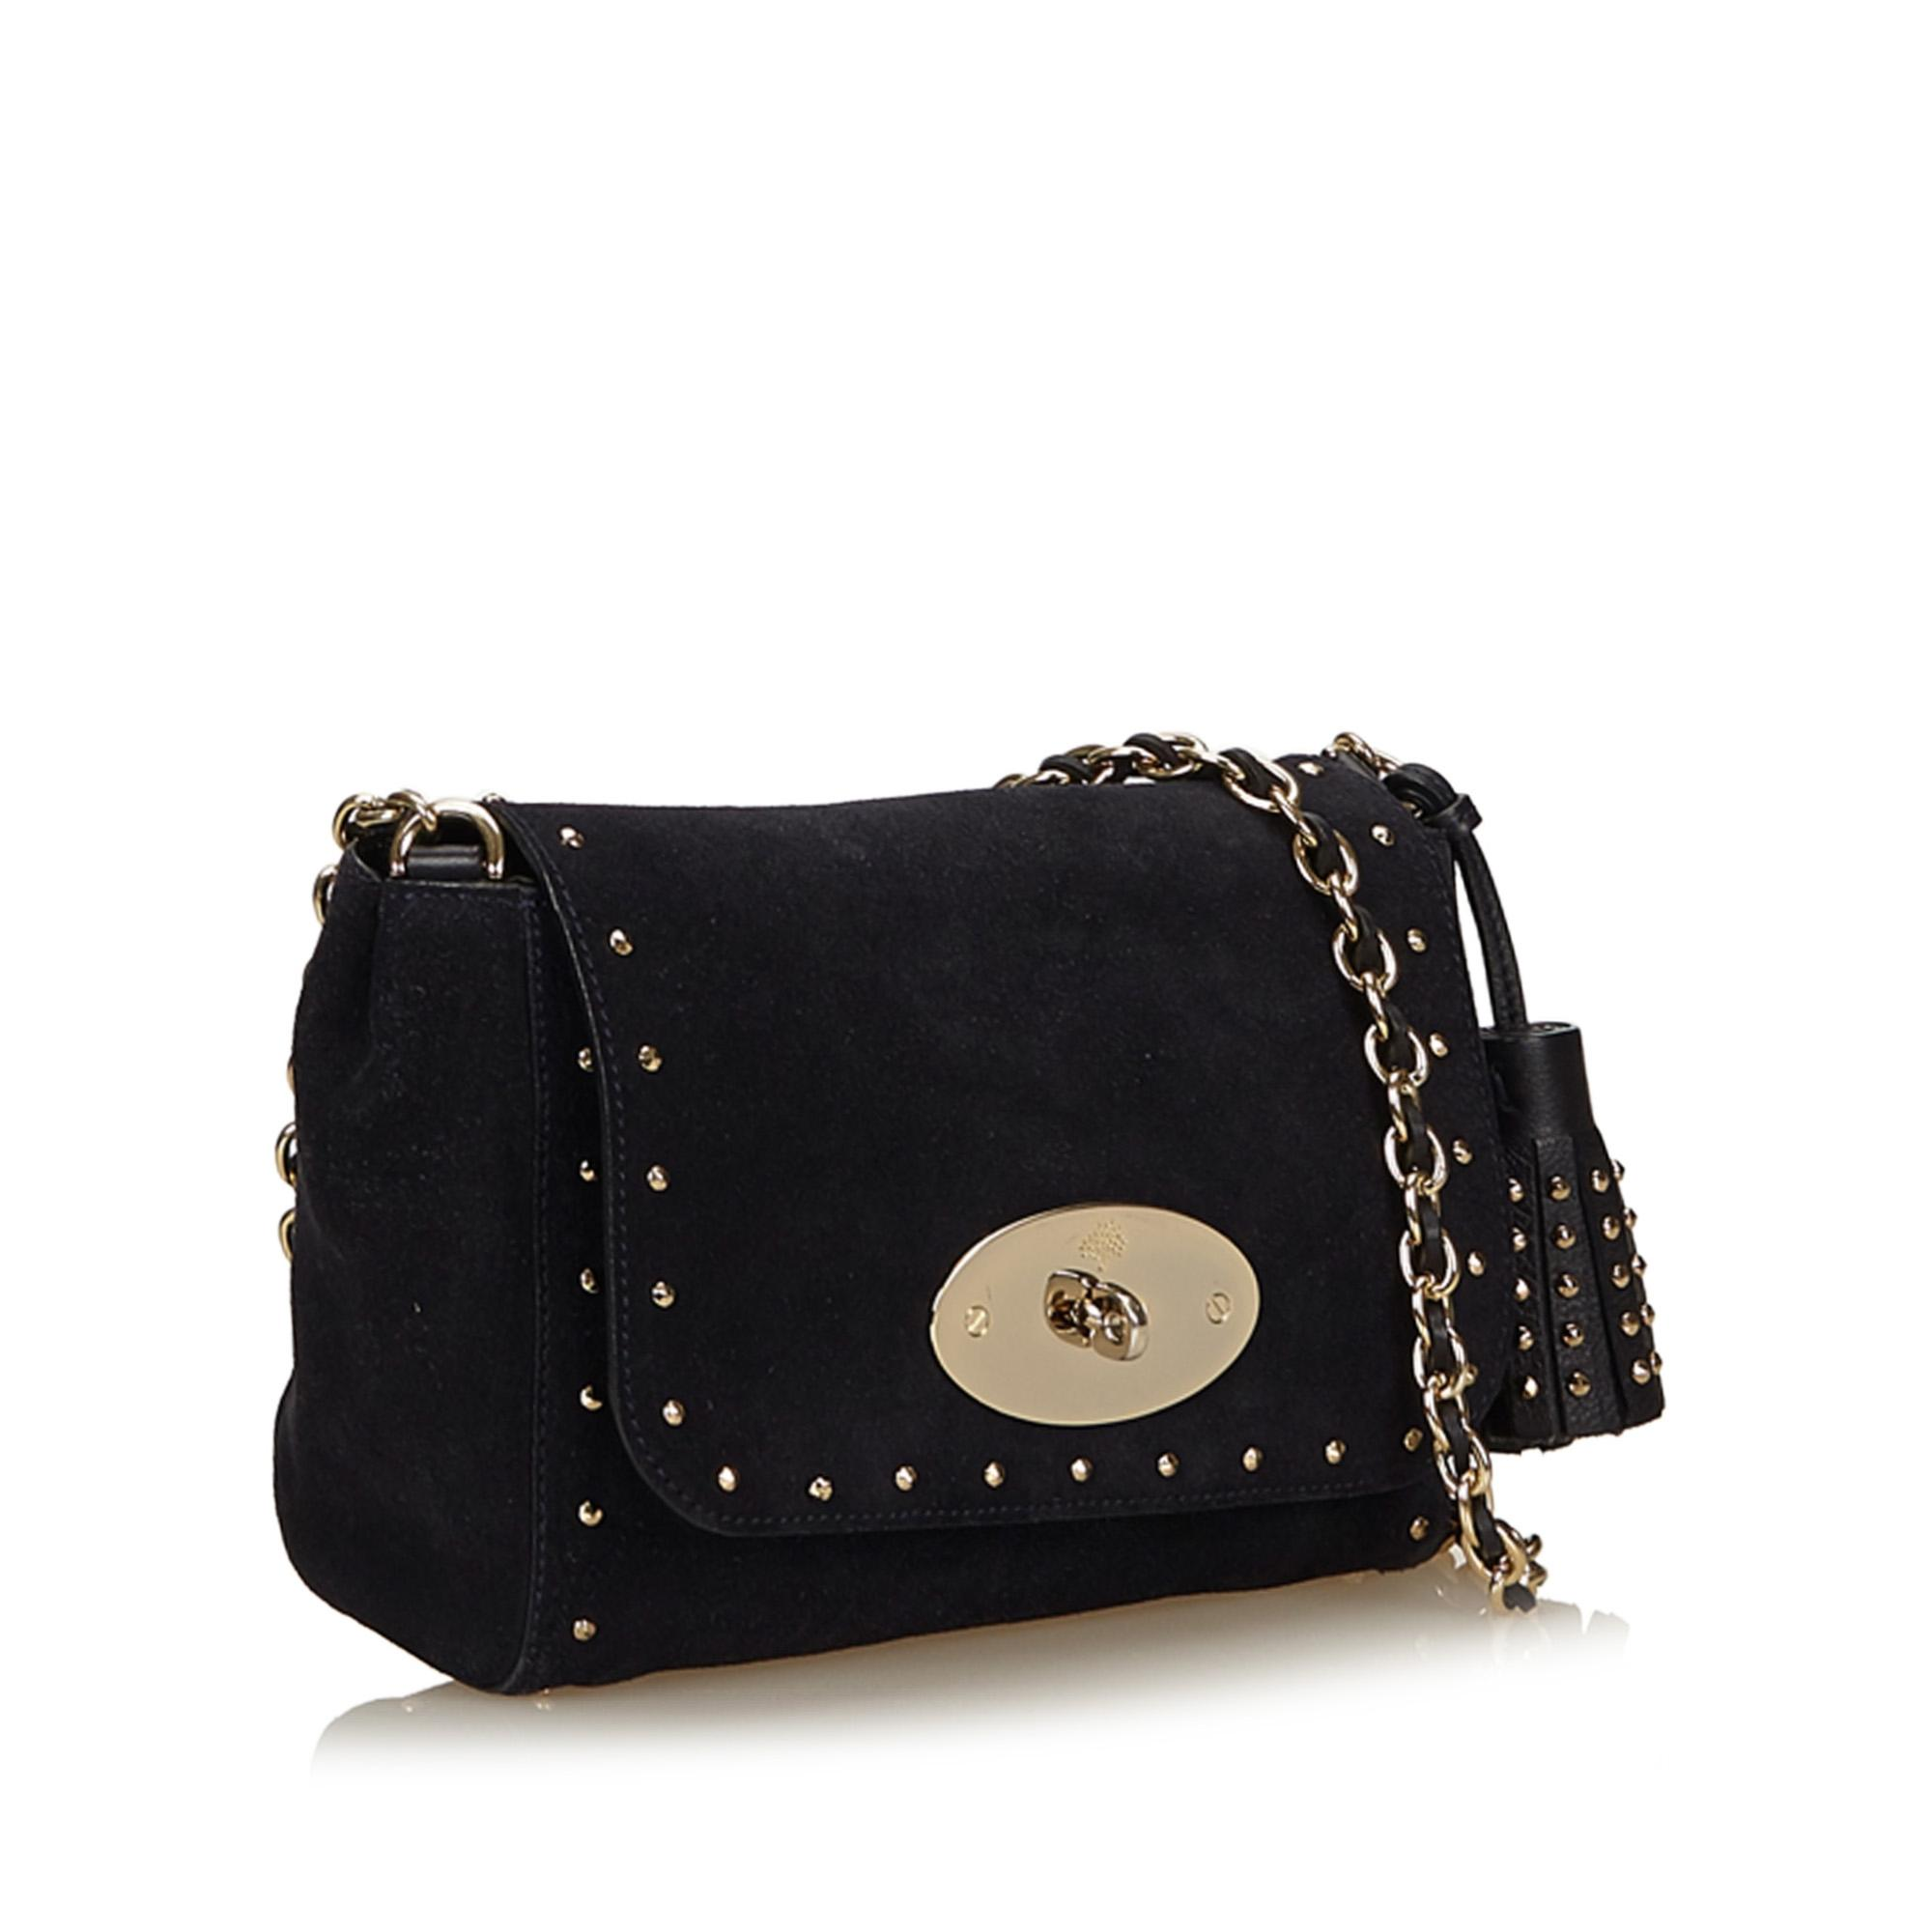 770fab2646 ... get mulberry studded lily black leather x suede x metal x others shoulder  bag tradesy d9343